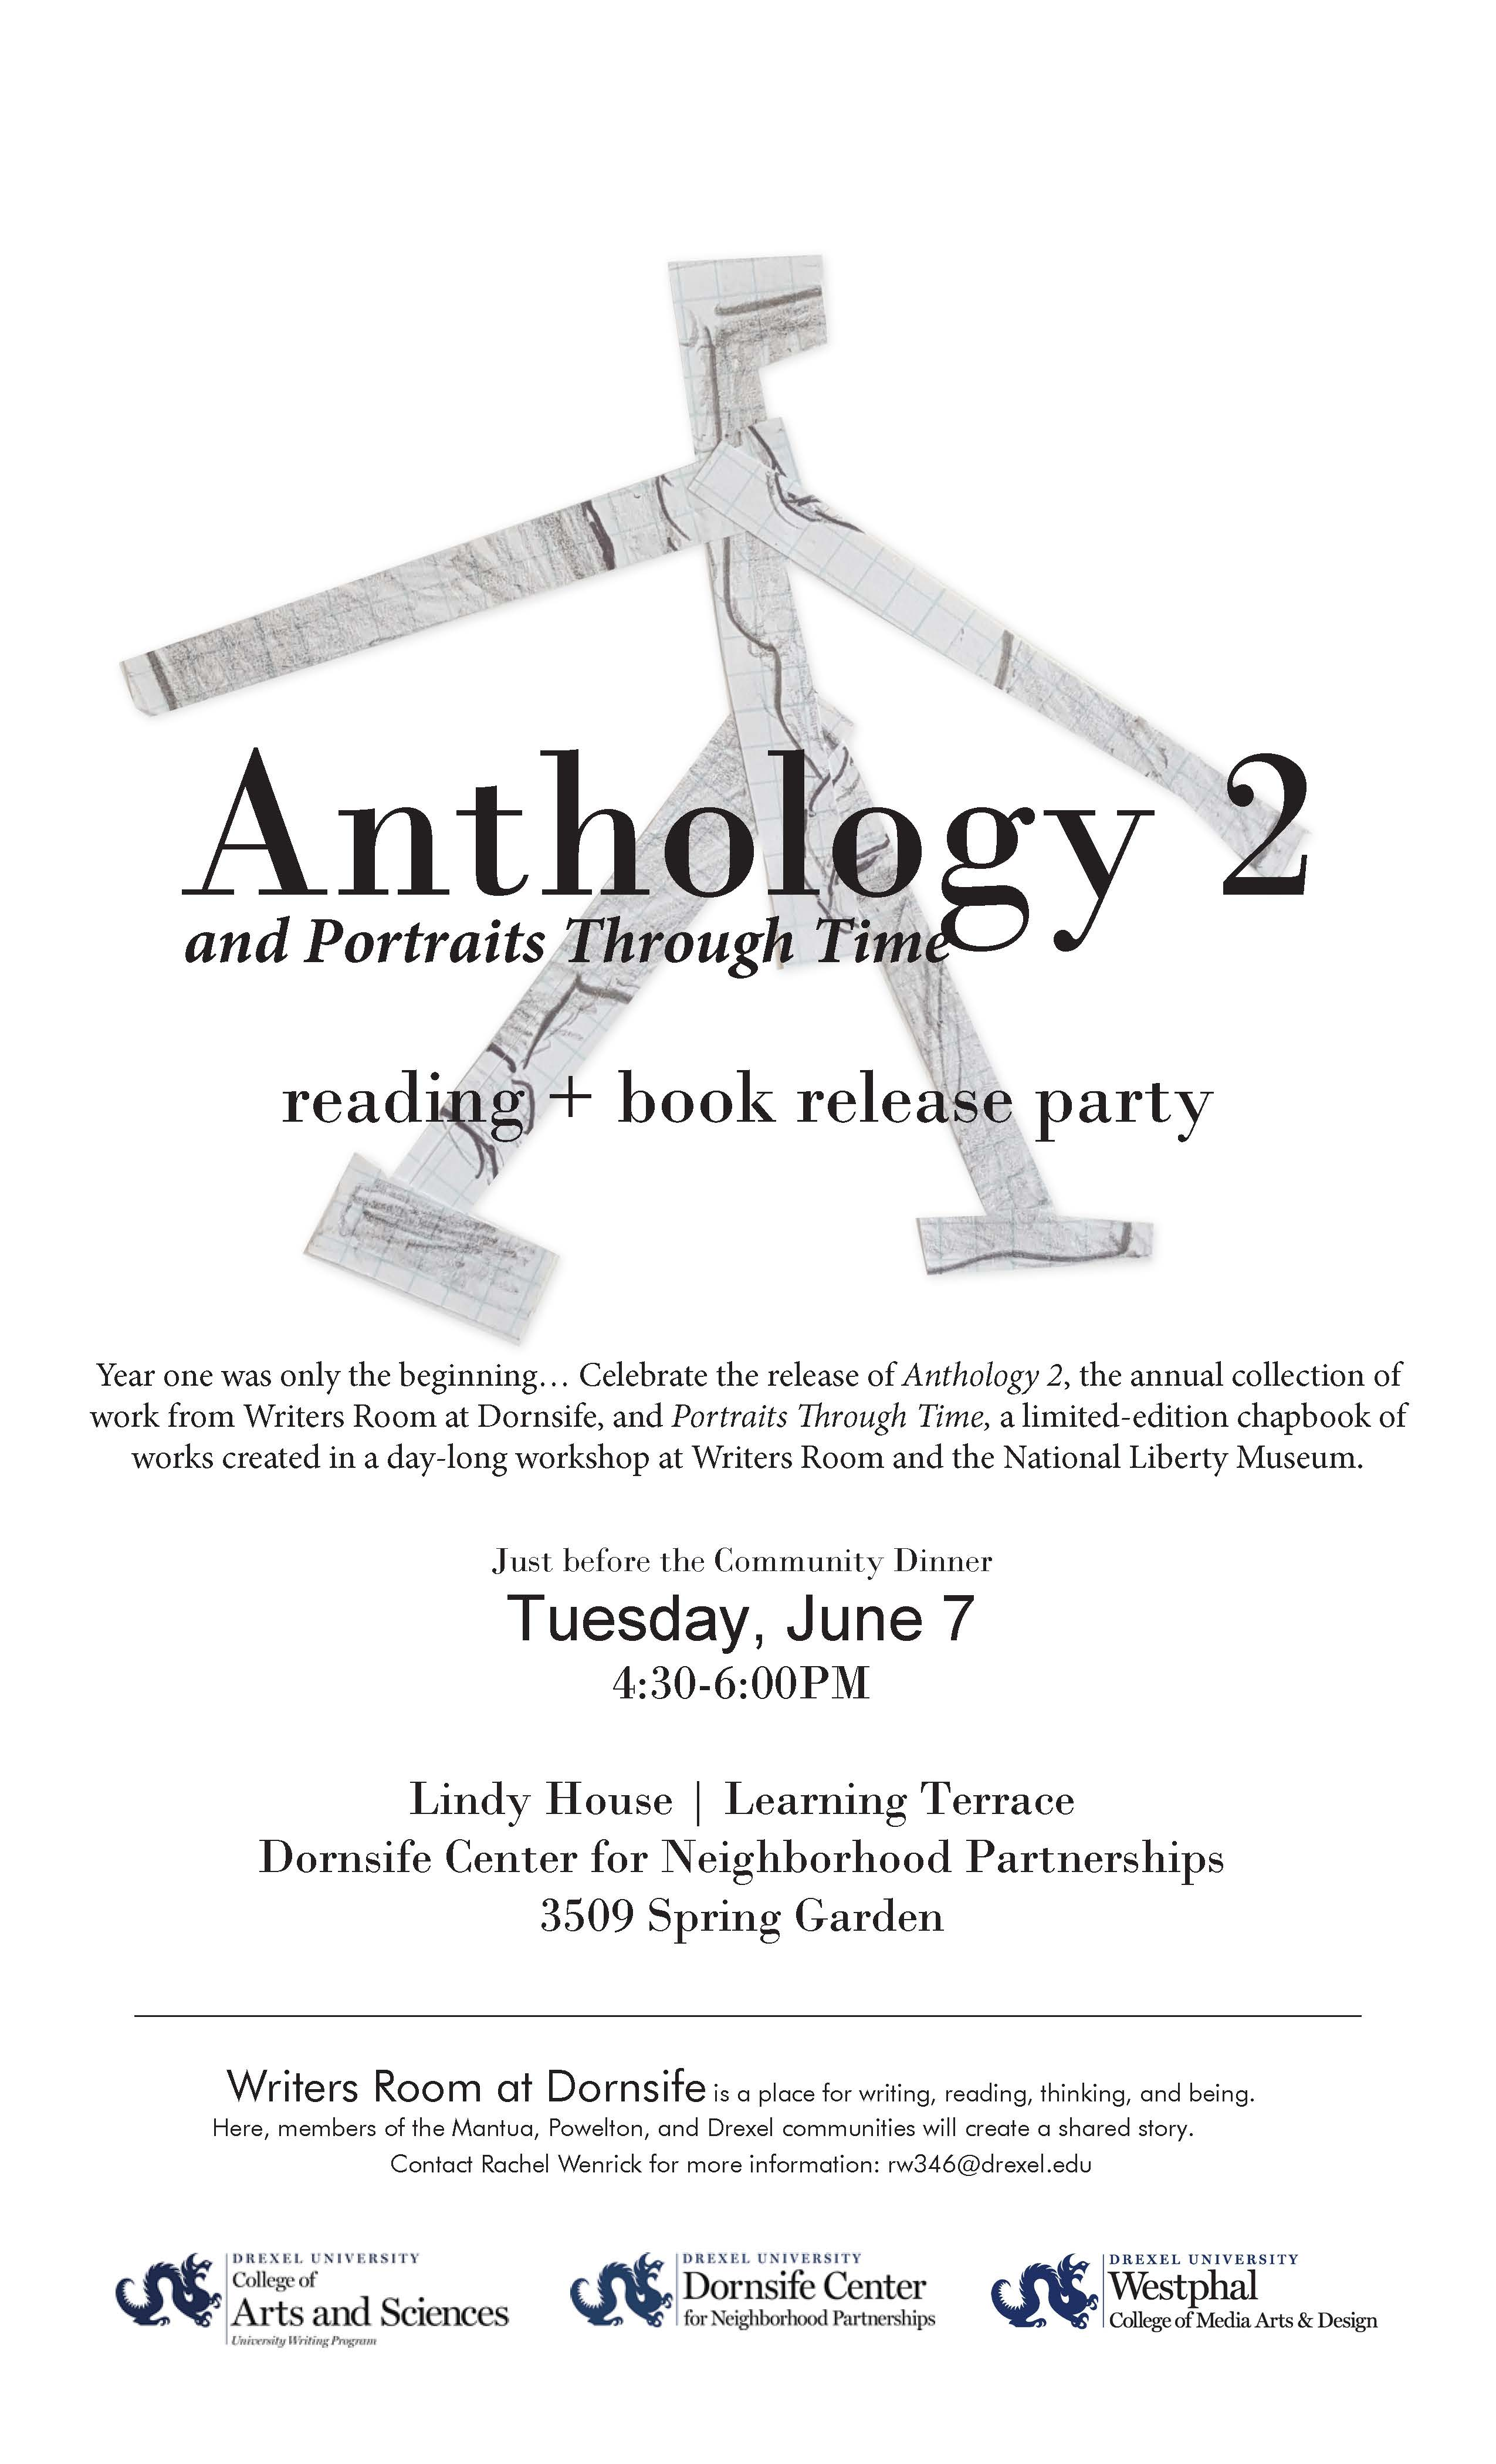 The poster for this year's Writers Room anthology reading.